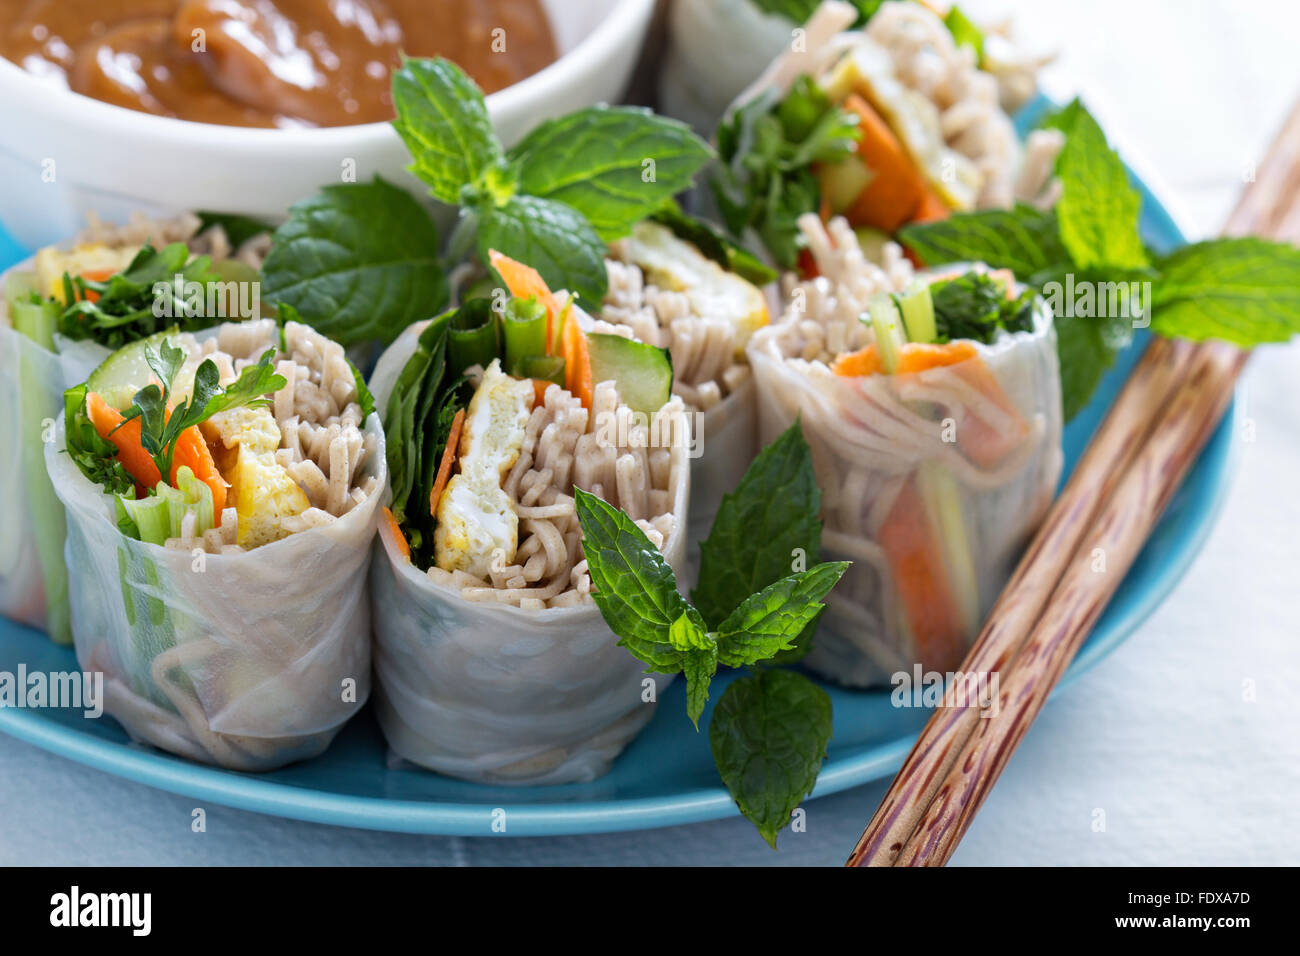 Summer rolls with soba noodles, egg and vegetables - Stock Image